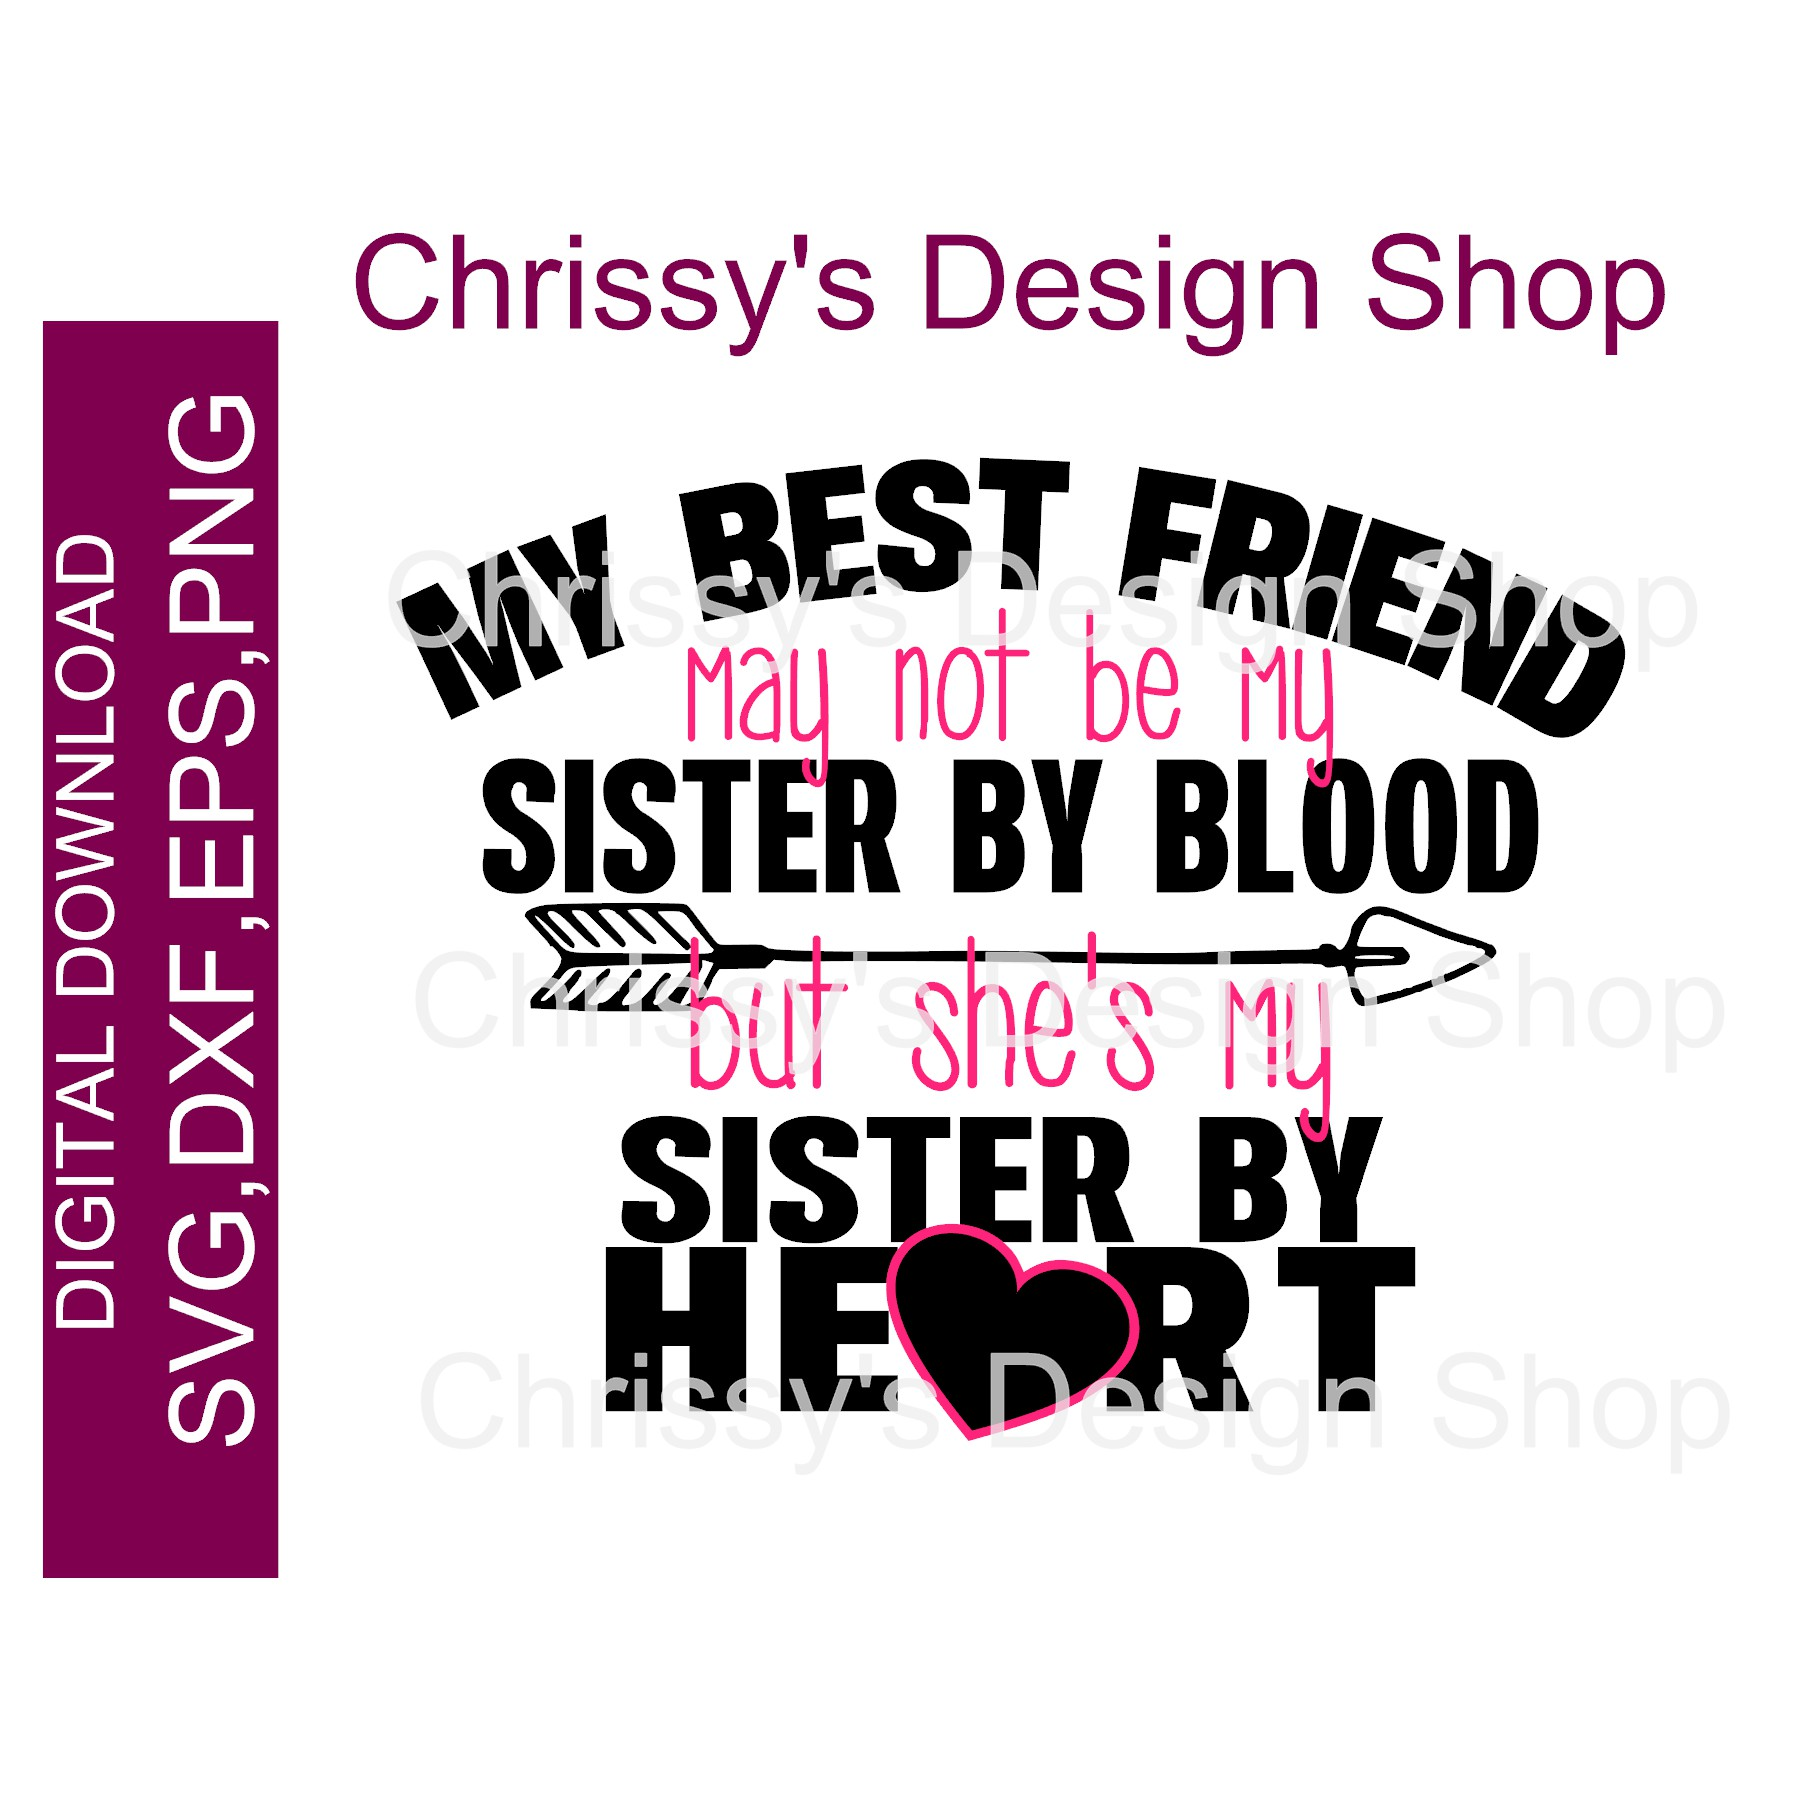 Best Friend Sister By Heart Svg Dxf Png Chrissy S Design Shop